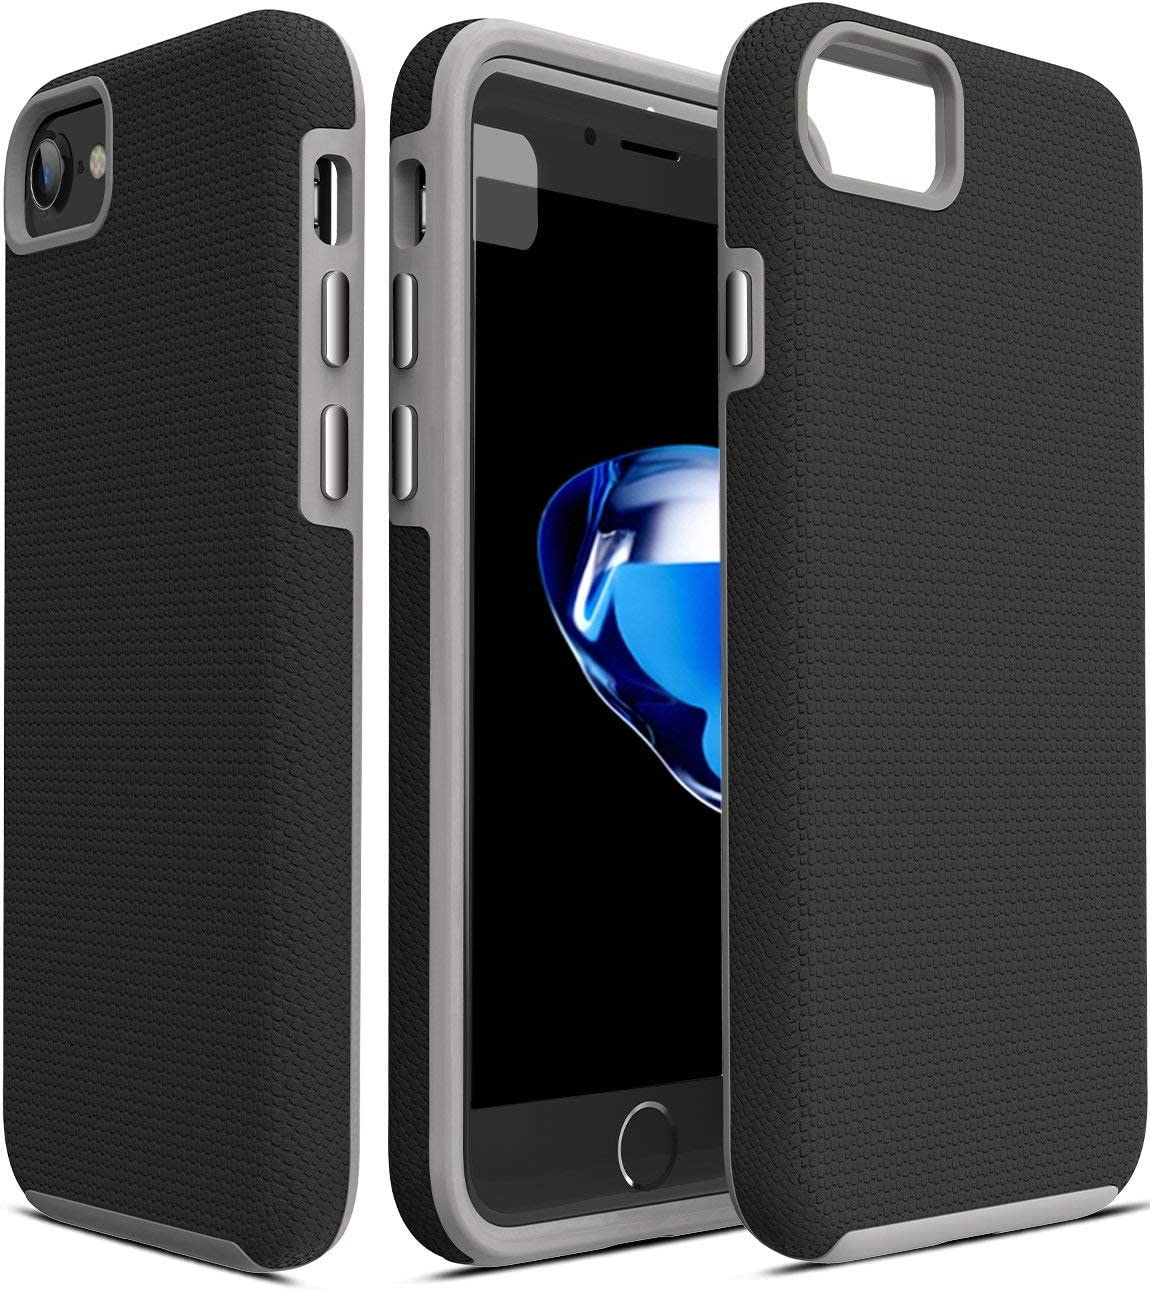 TOZO for iPhone 7 Case/iPhone 8 Case, Armor Series Football Pattern Texture Soft Touch Anti-Slip Grip [Shock Proof] Ultra Rugged Dual Layer Protect Case [Gray+Black]